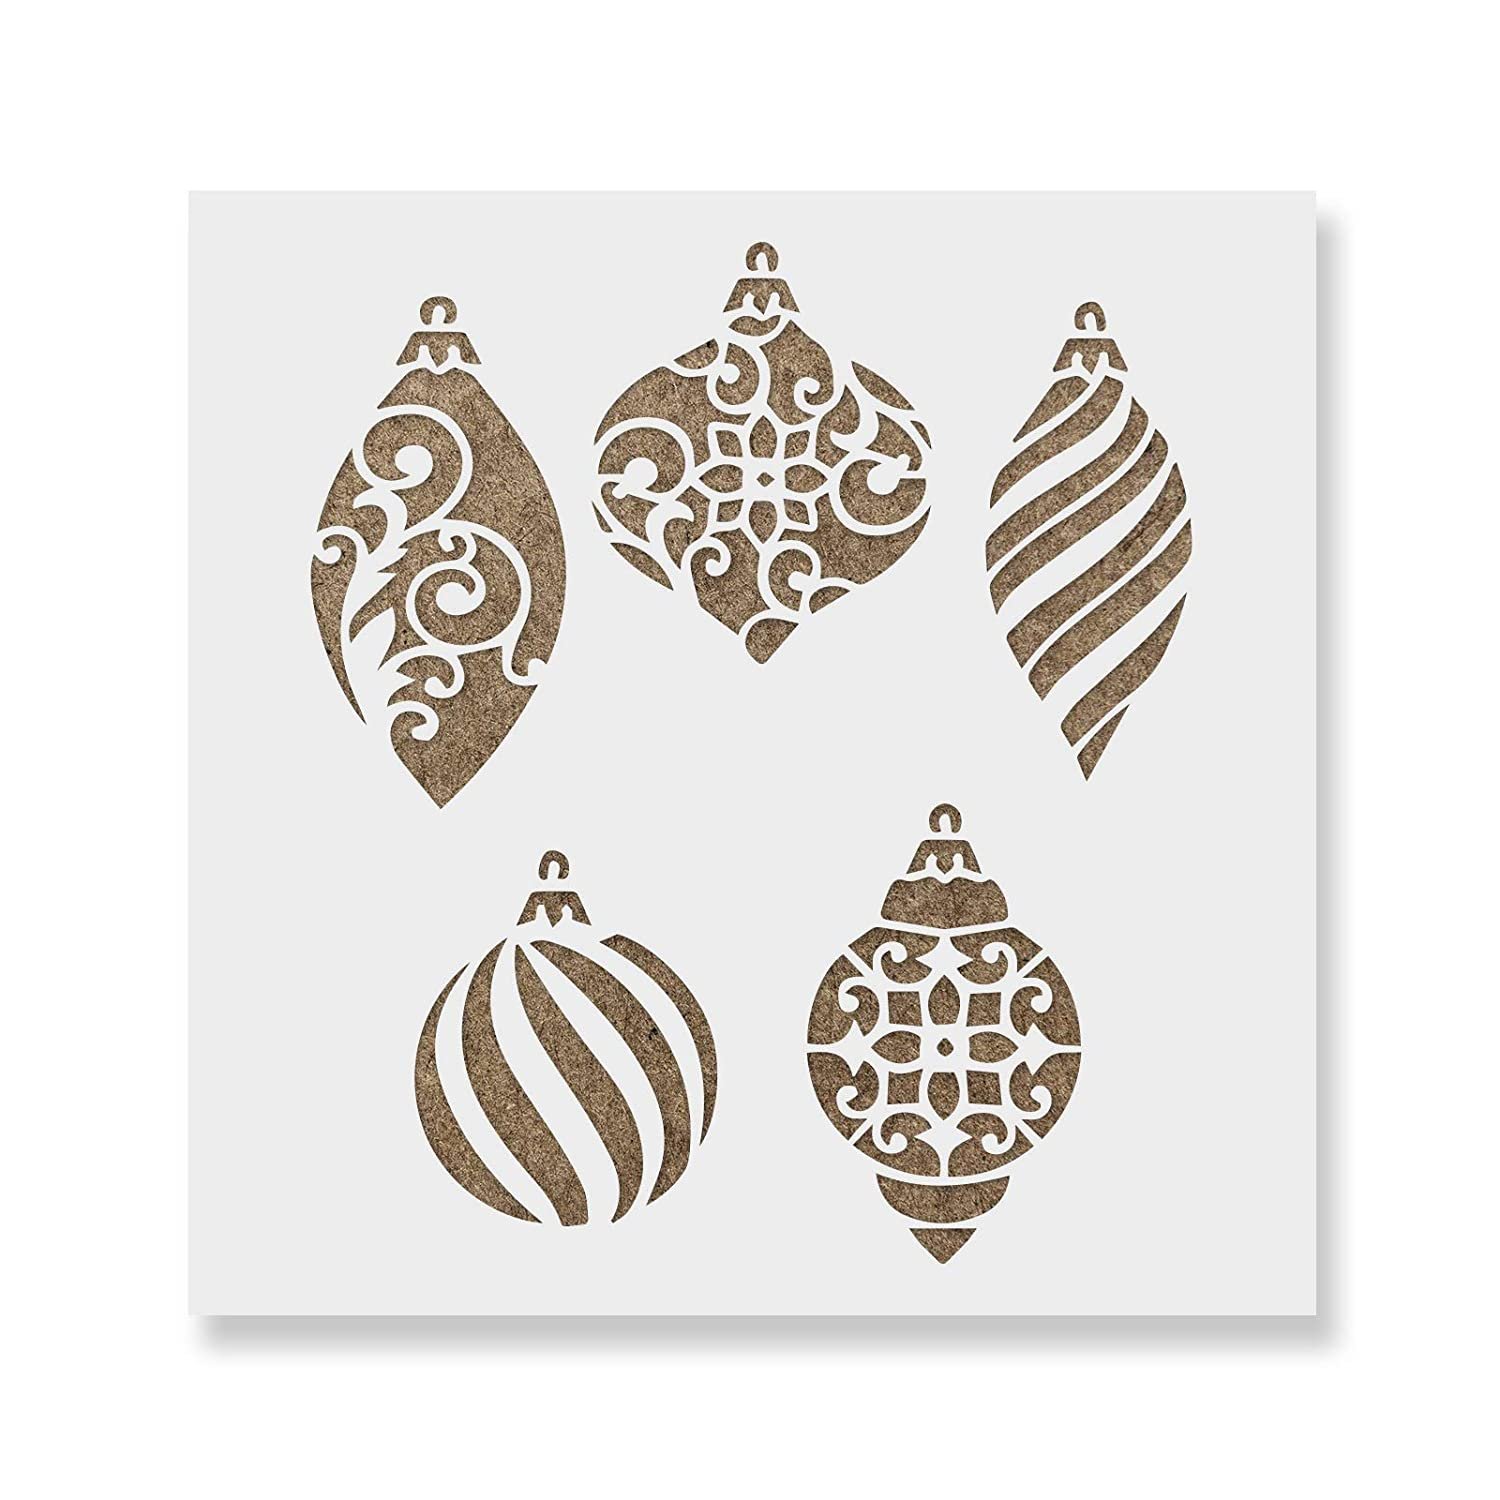 Christmas Stencils For Wood.Christmas Ornaments Stencil Diy Christmas Stencils Of Ornaments That Work Great For Wood Signs And Dzcor